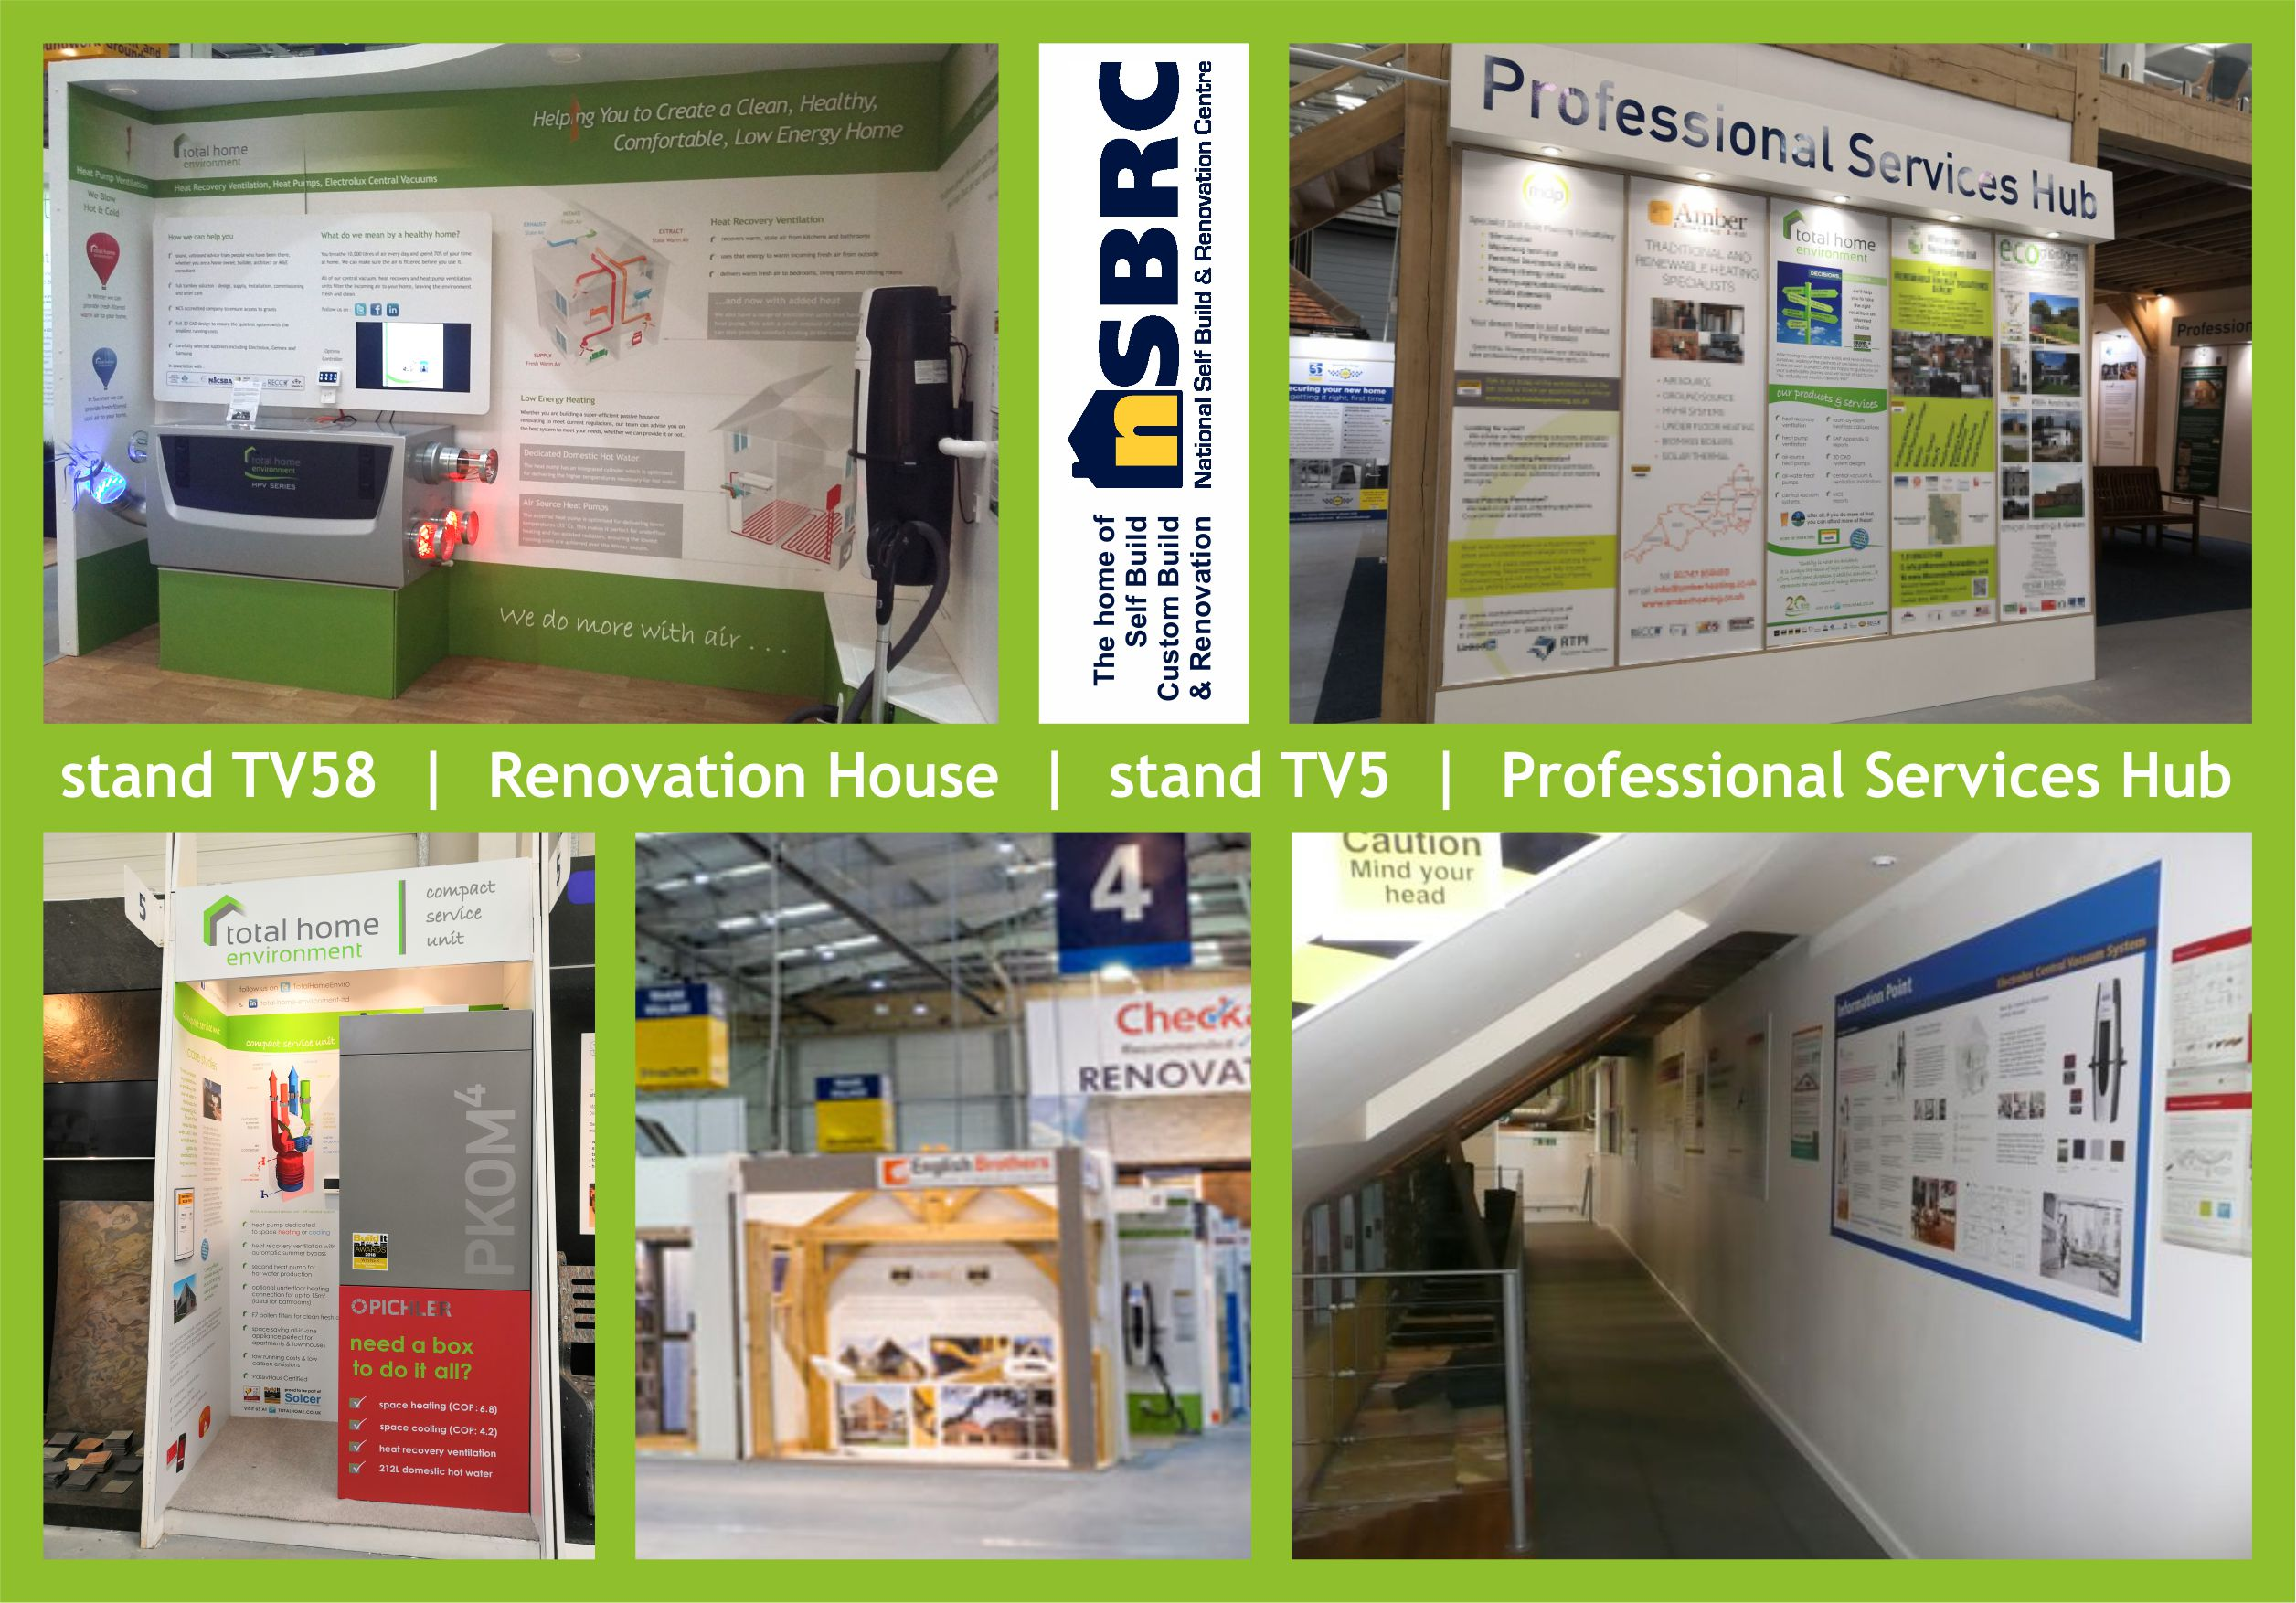 Total Home Environment presence at NSBRC